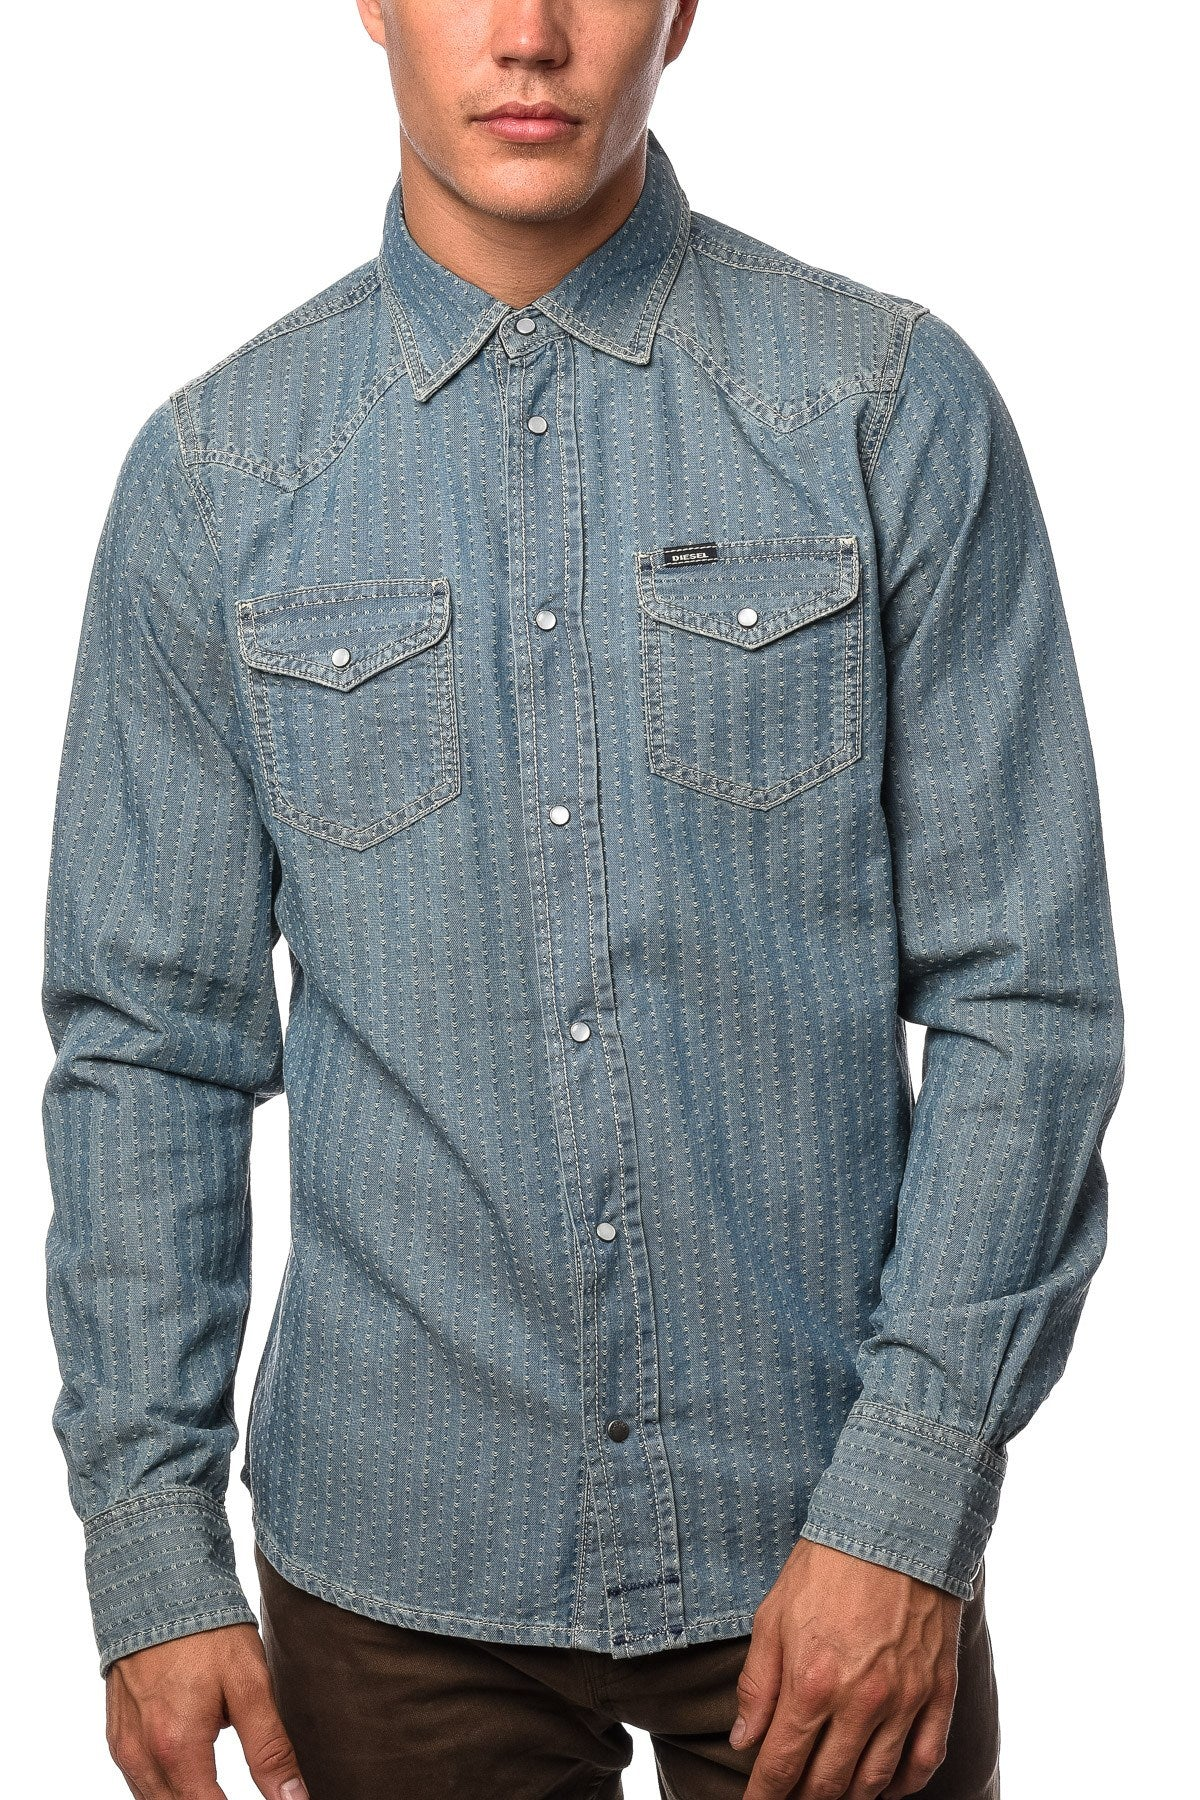 Shirt - Diesel New-Sonora Shirt In Denim